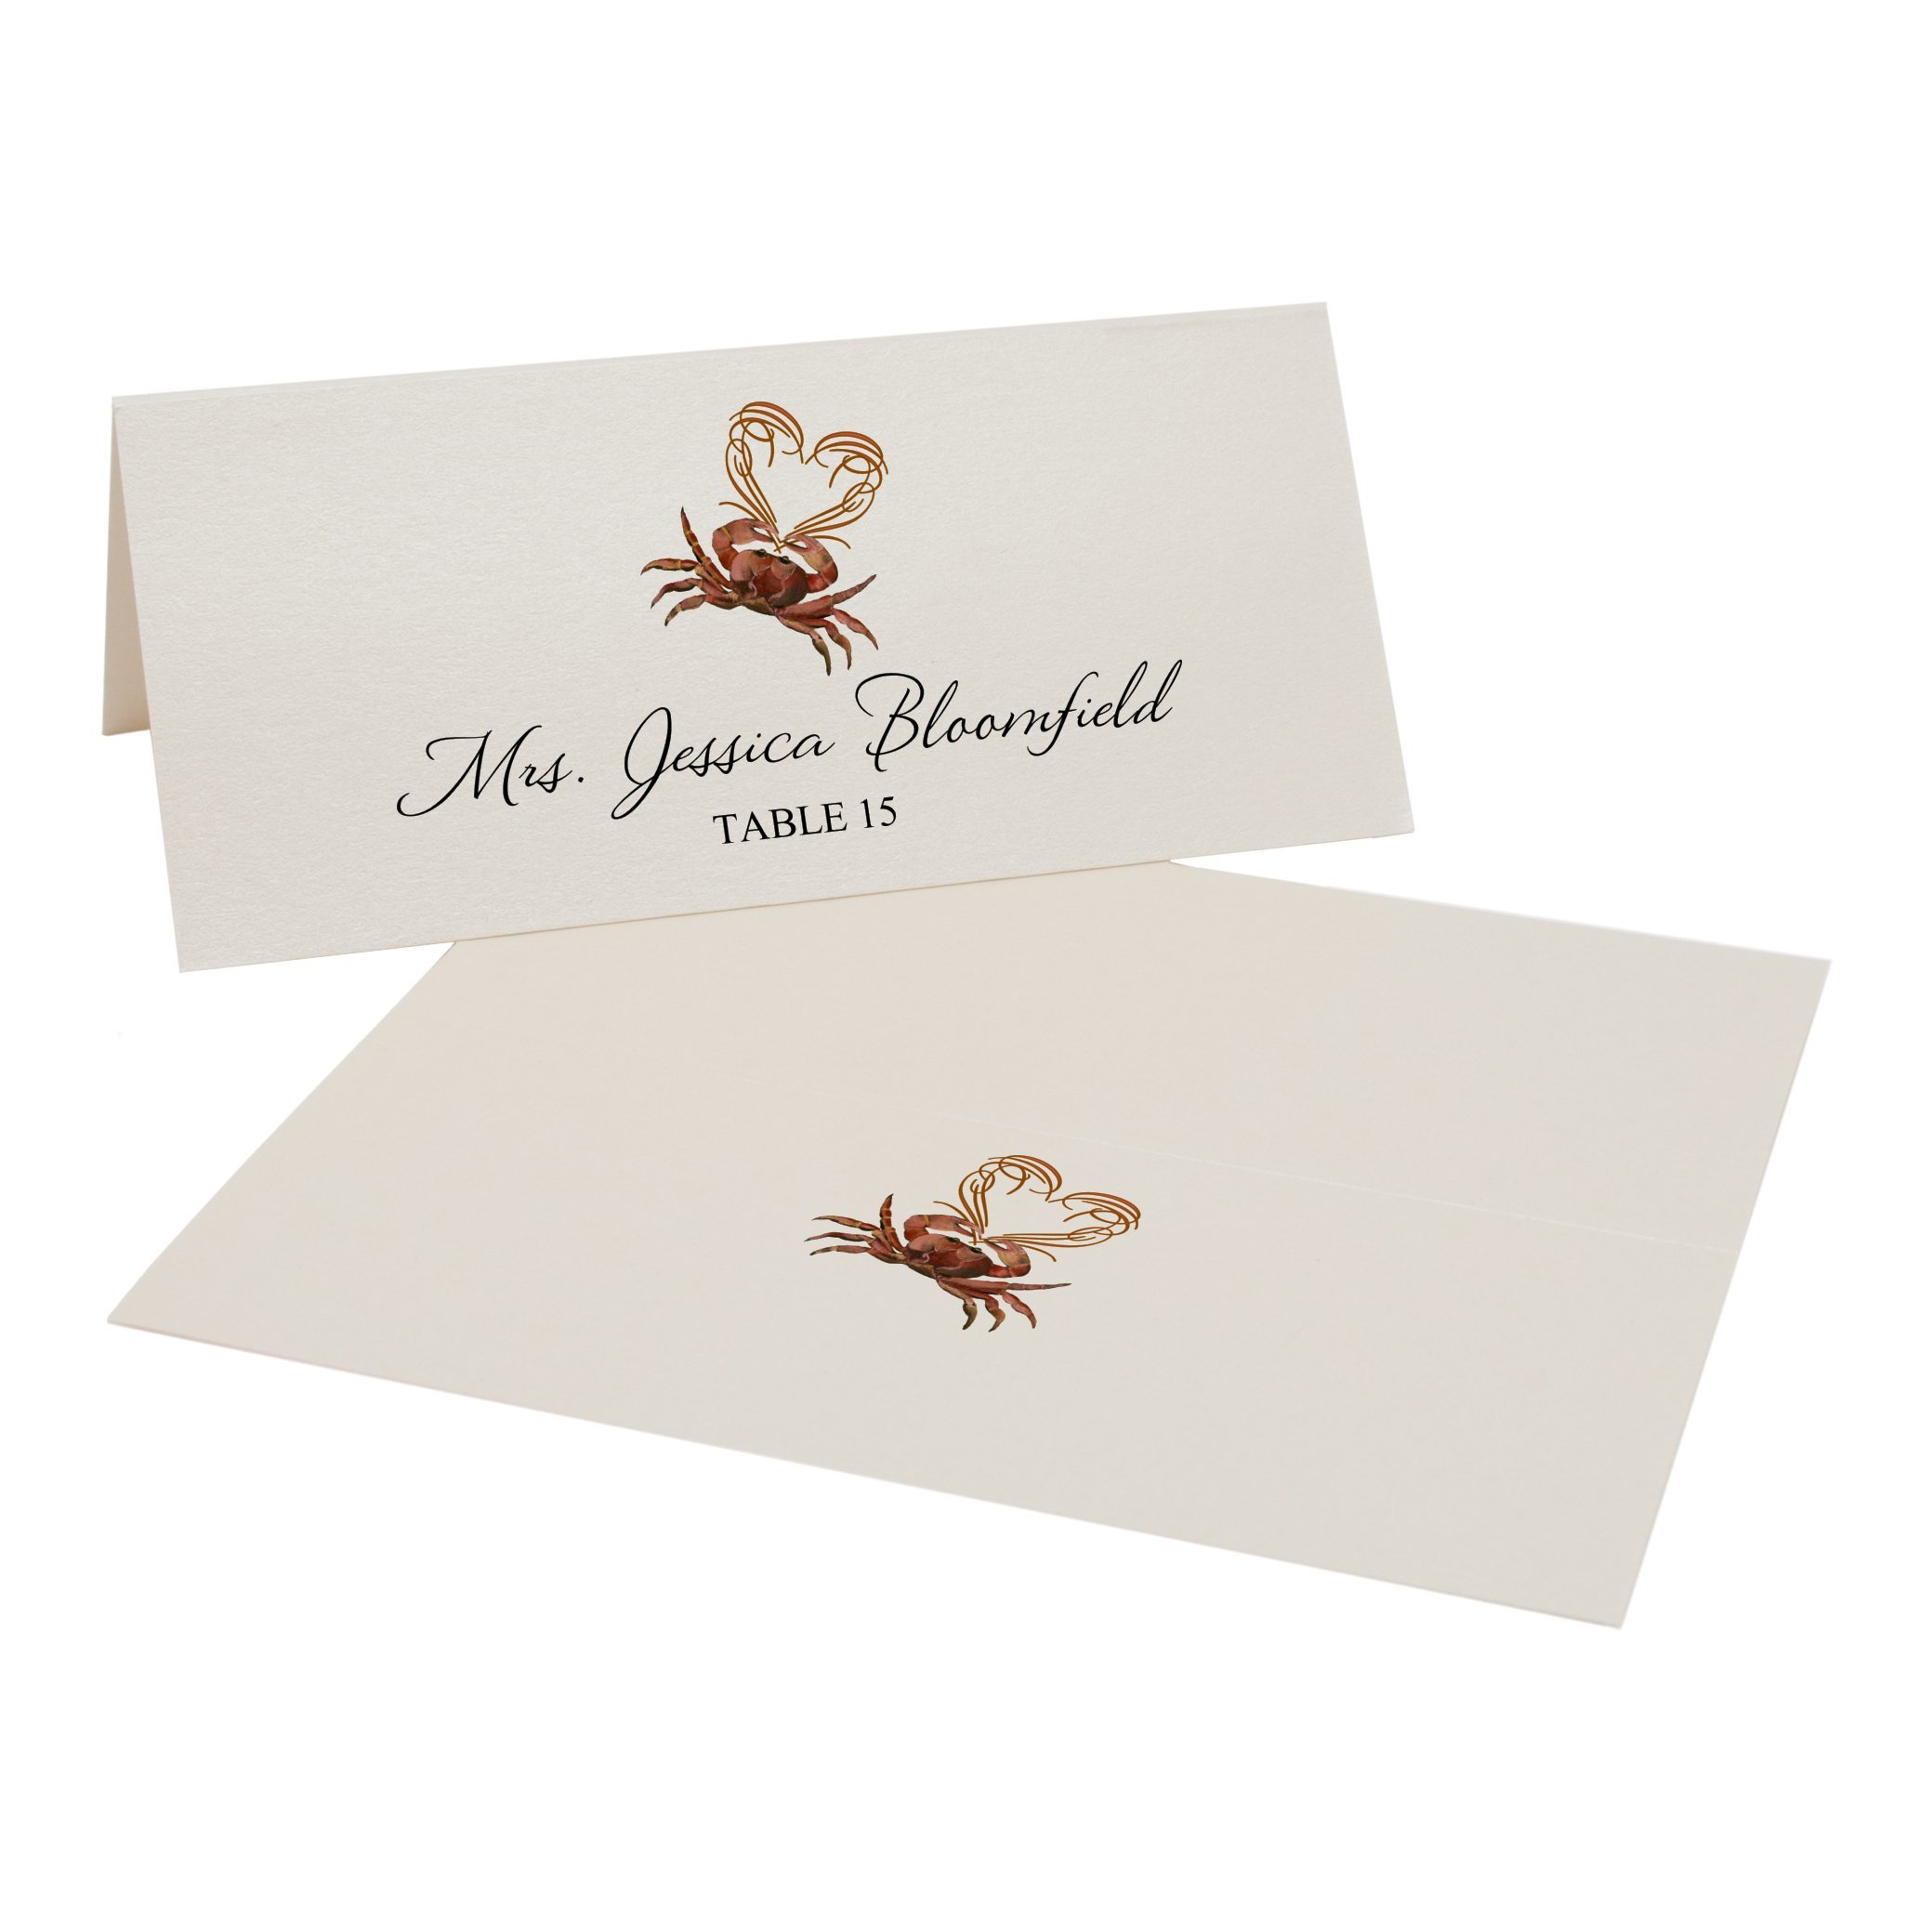 Crab and Heart Place Cards, Champagne, Set of 375